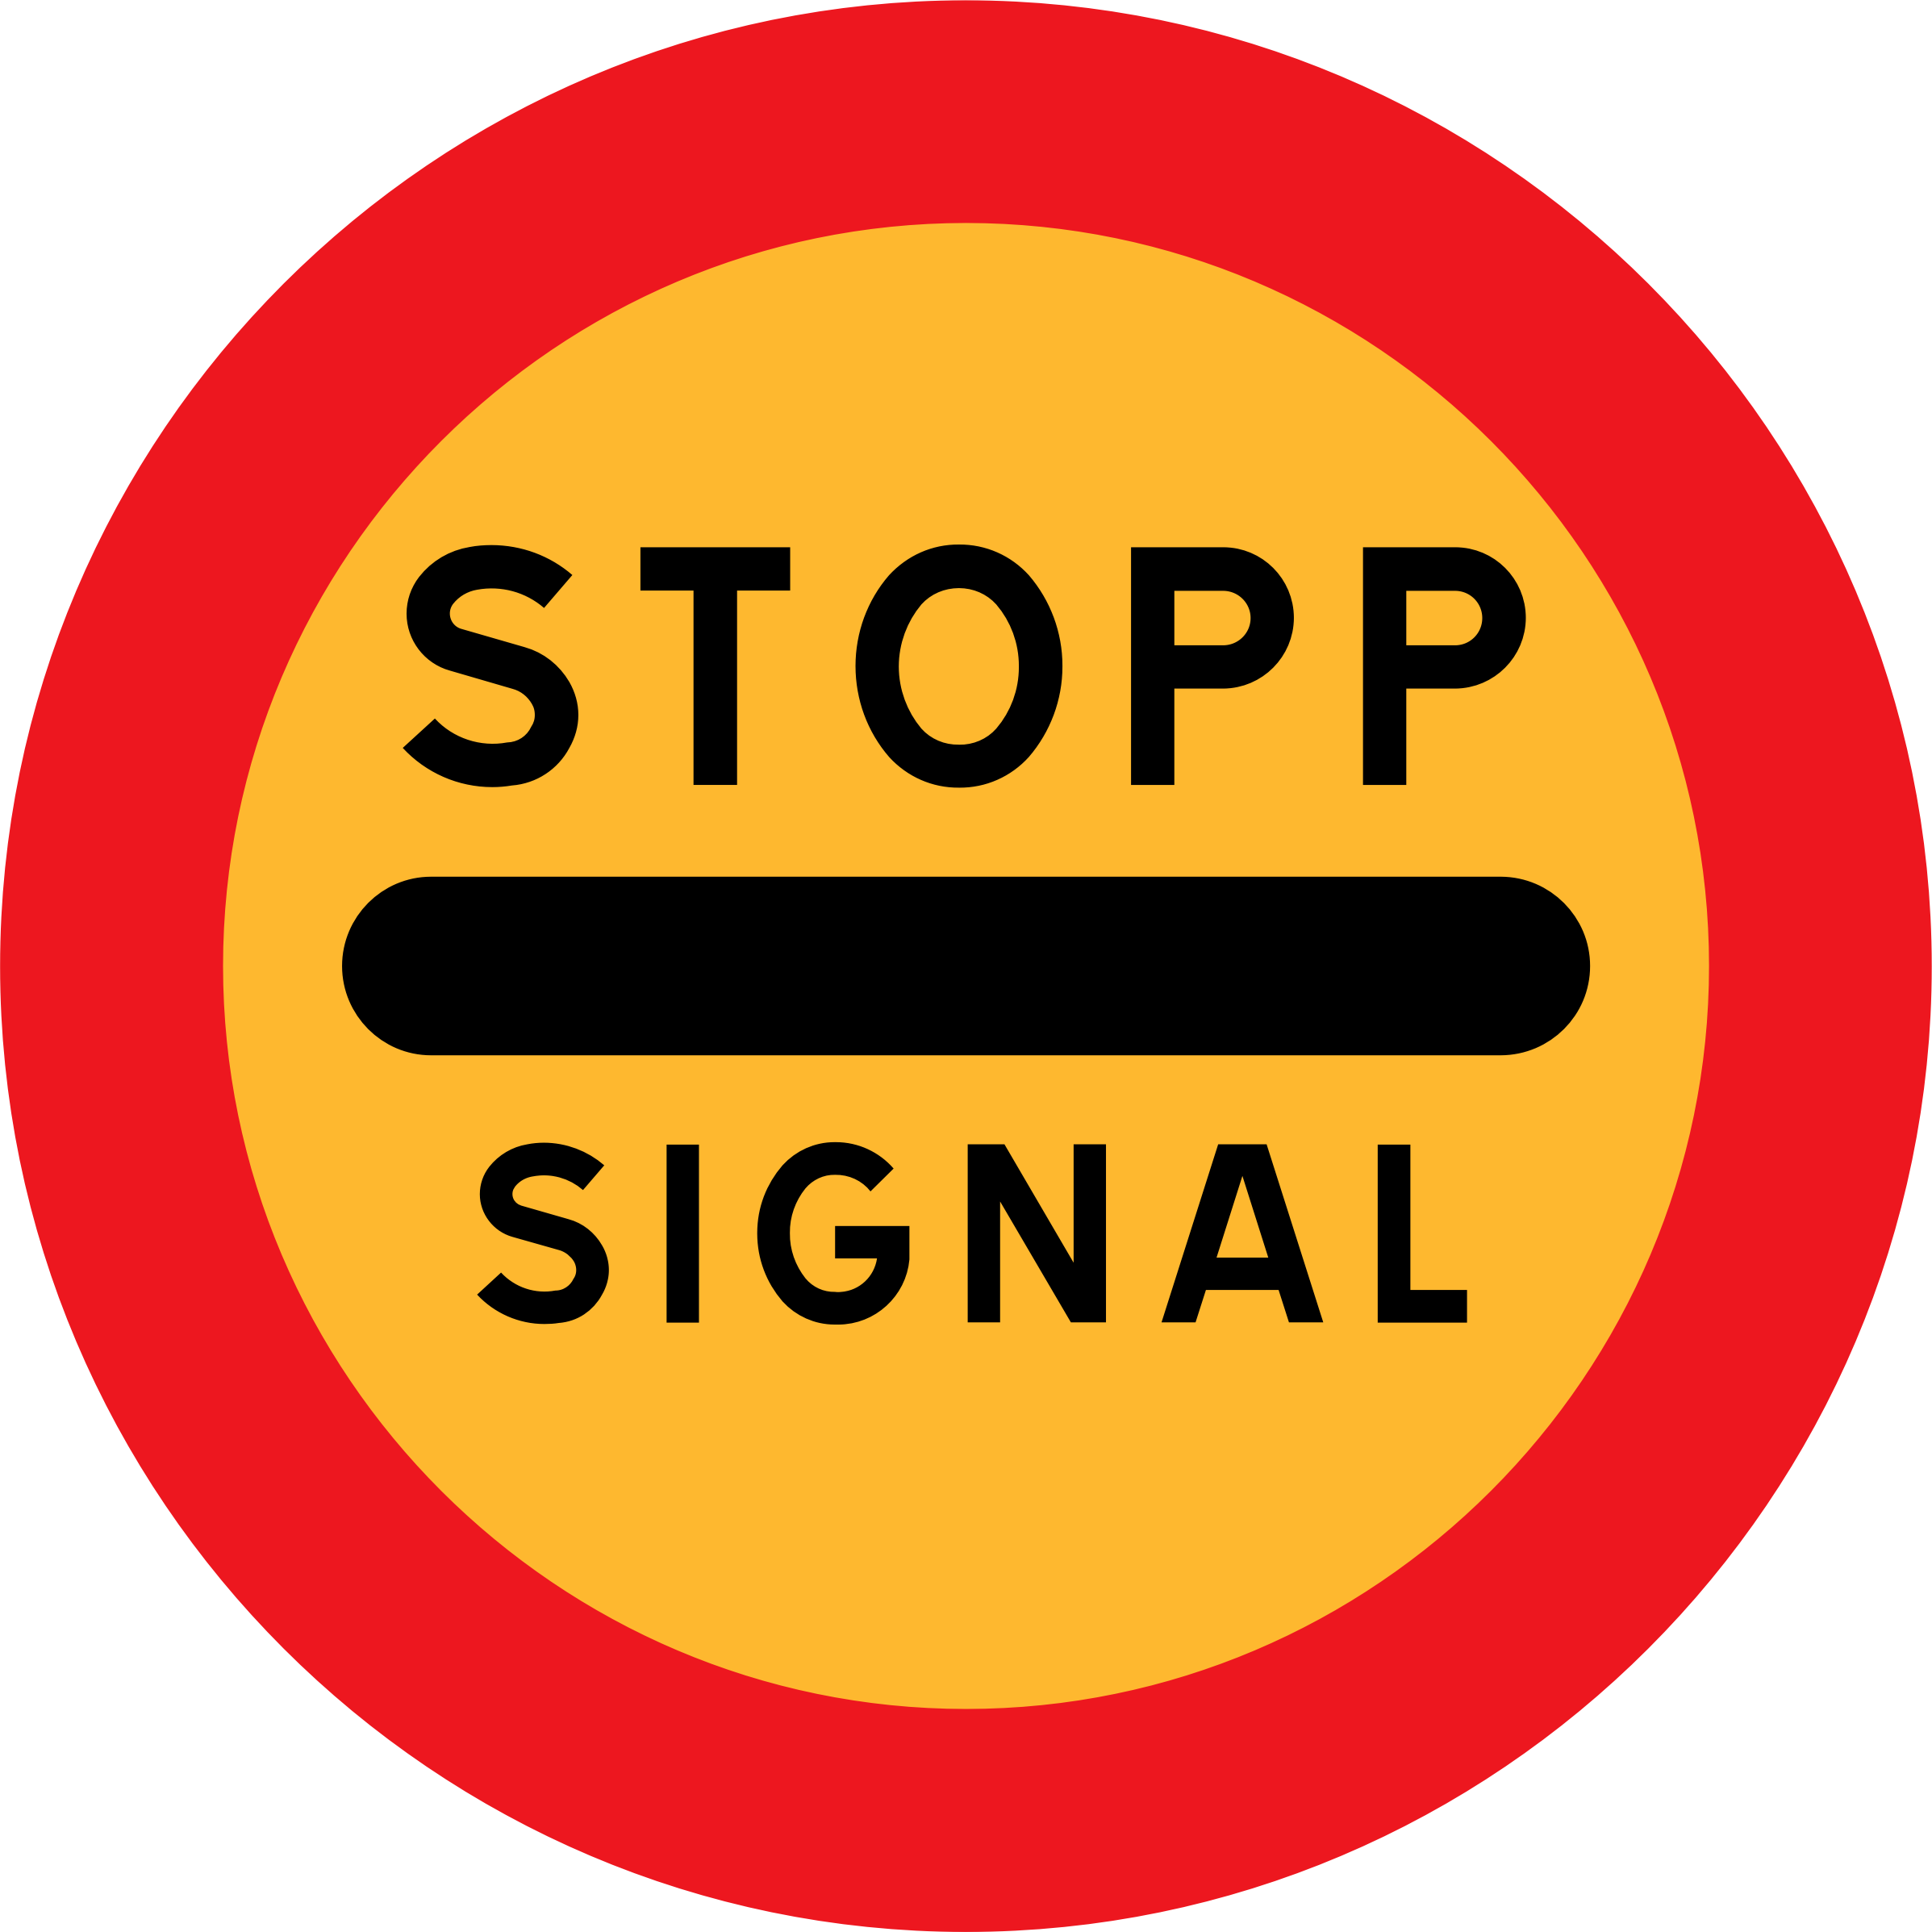 stopp signal sign by ryanlerch